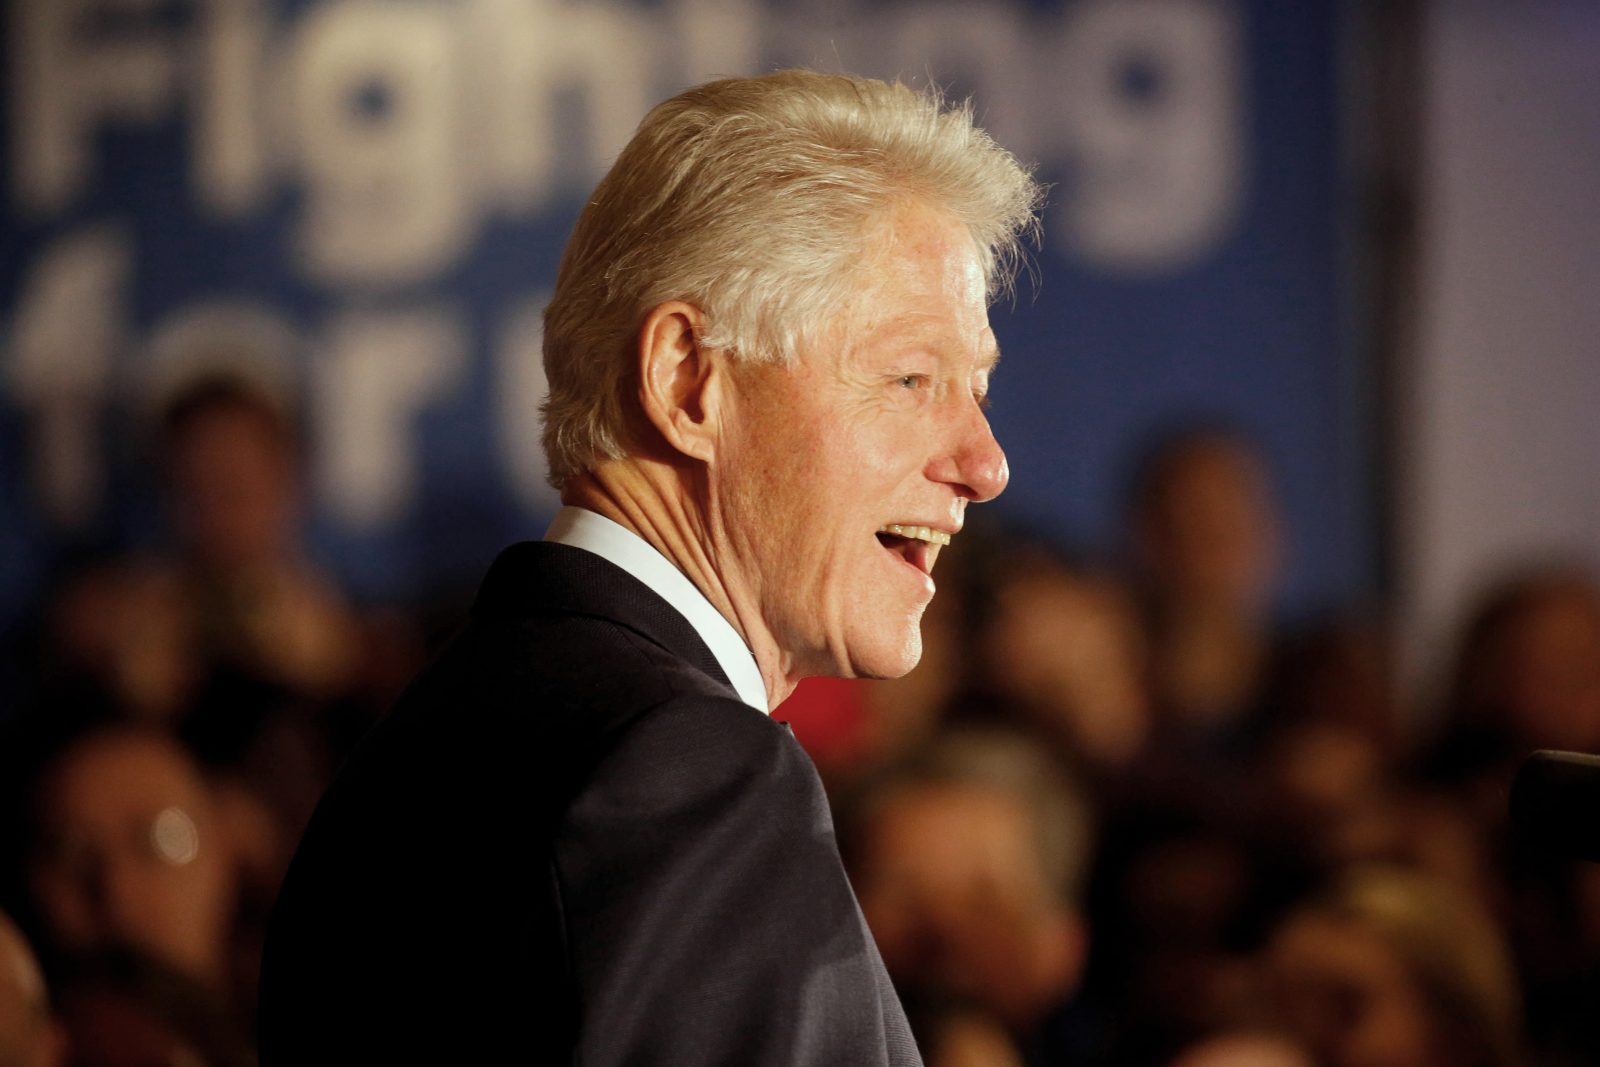 Former U.S. President Bill Clinton will attend funeral services Friday in Rochester for Rep. Louise Slaughter, who died last week at 88. (Derek Gee/News file photo)